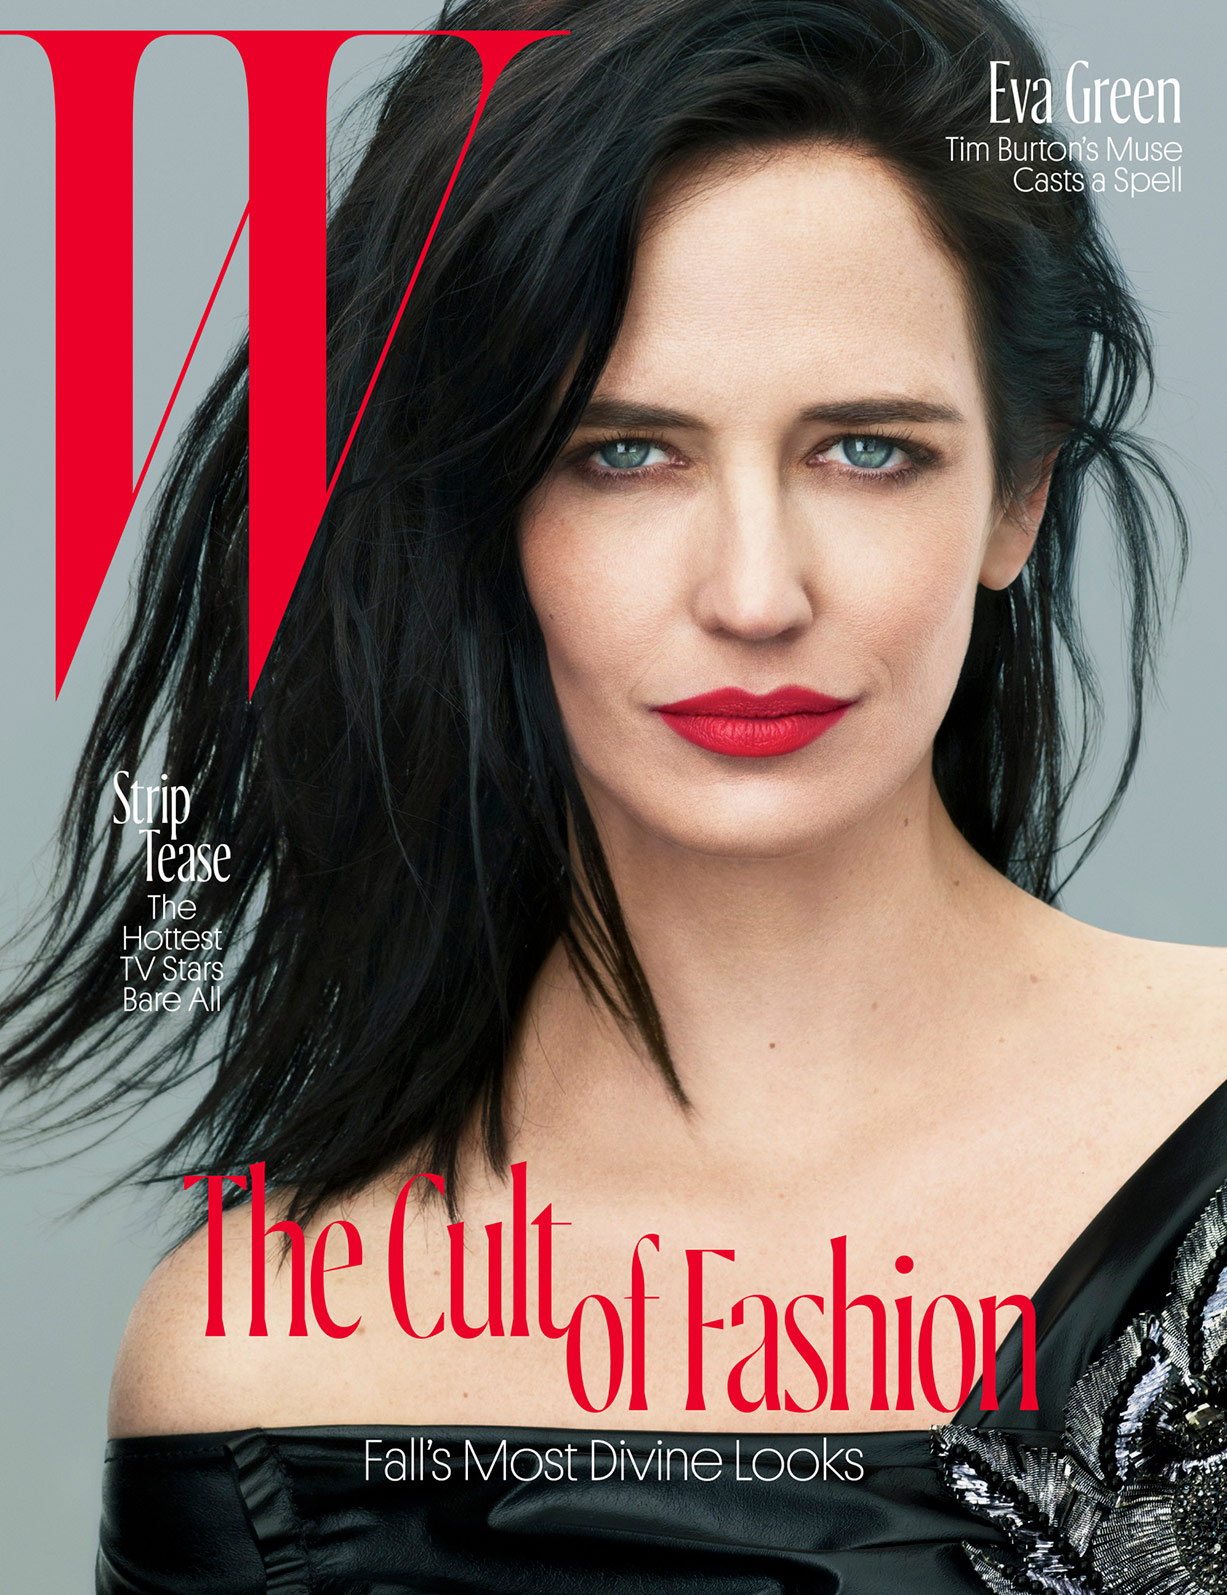 Ева Грин / Eva Green by Mert & Marcus in W Magazine august 2016